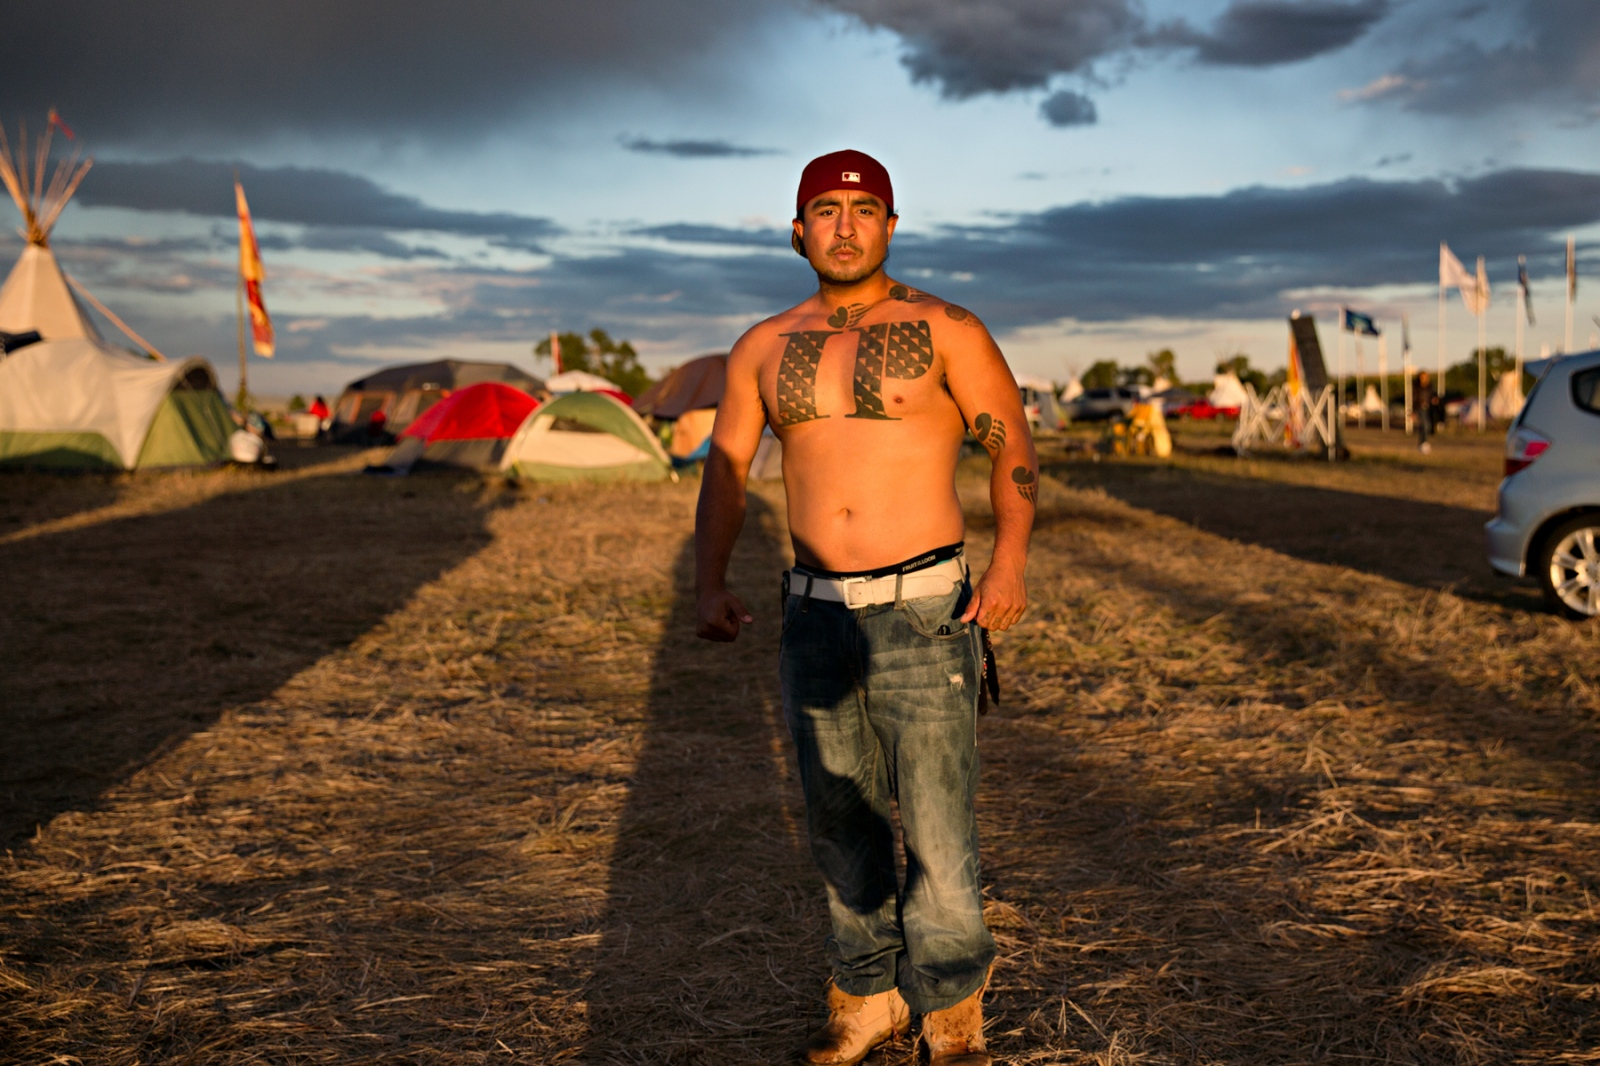 September 8, 2016- Cannon Ball, North Dakota, United States:Red Bear from Santa Rosa, CA came to support the NoDAPL movement along with his cousins. His tattoo of Indian Power took more than two days to finish.